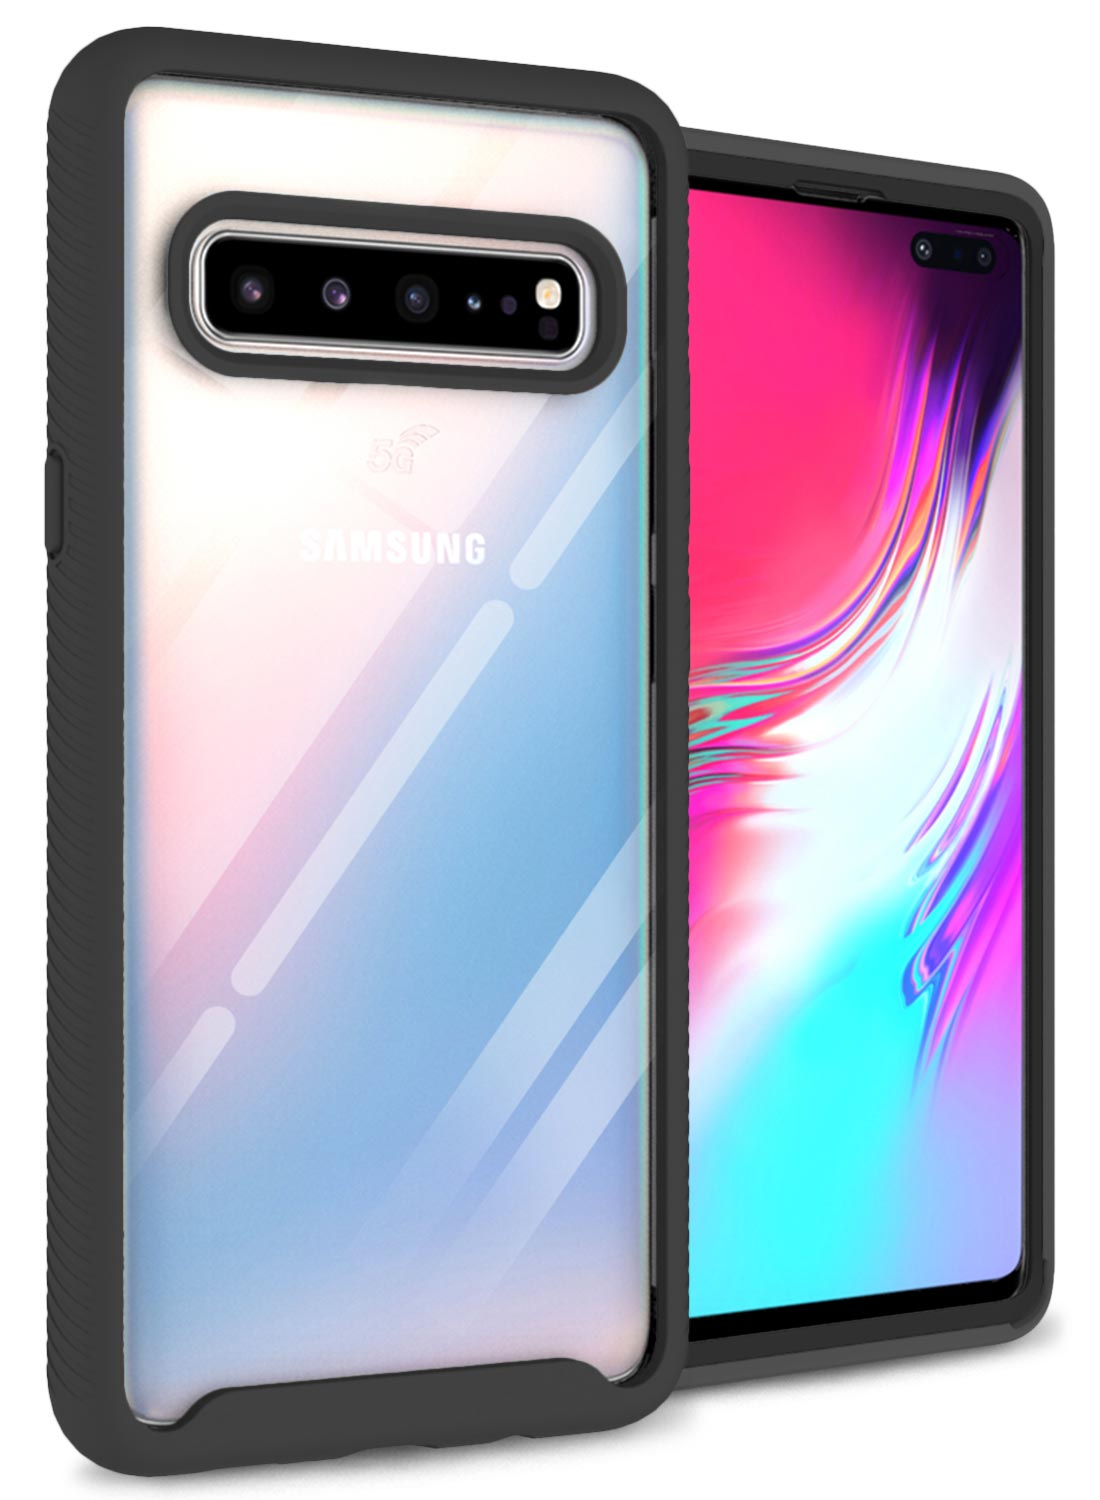 For Samsung Galaxy S10 5G Case Full Body Slim Fit Hard Protective Phone Cover   eBay